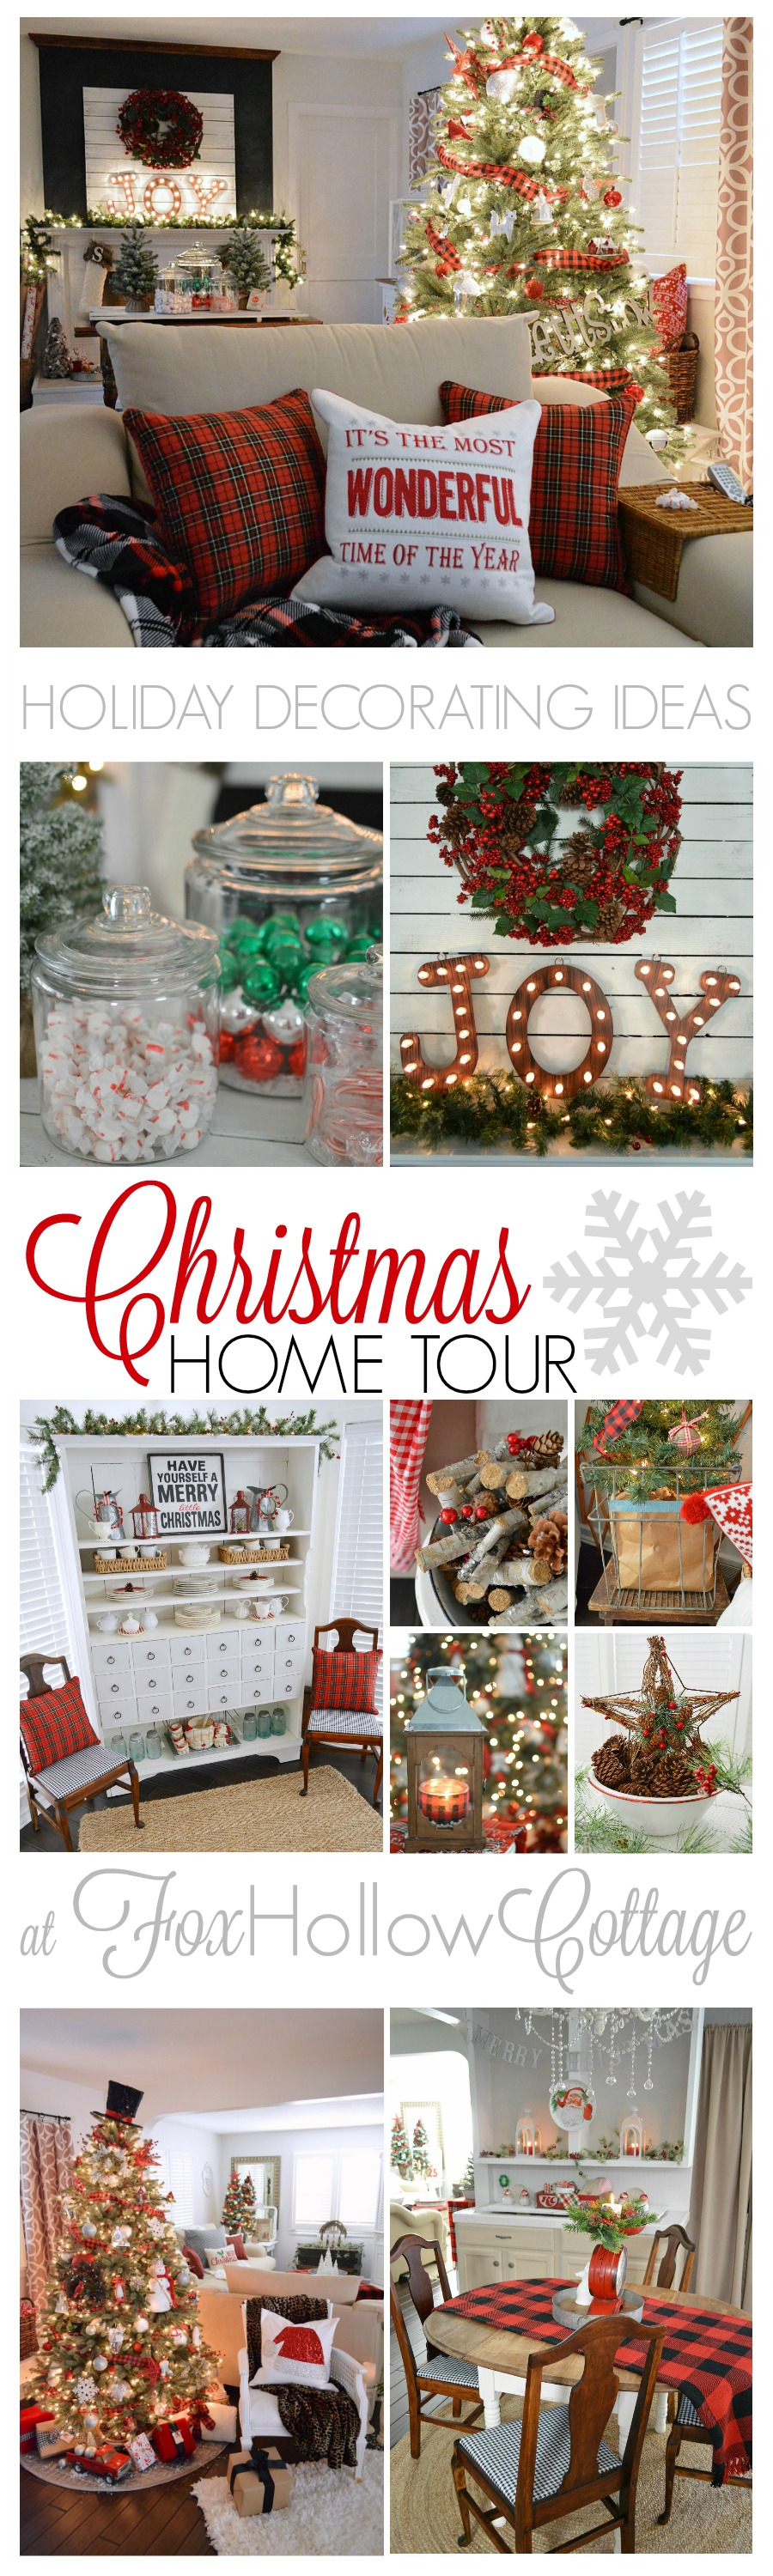 Christmastime at Fox Hollow Cottage. Visit this 1920's cottage home, decorated in traditional Christmas red with splashes of vintage & DIY accompanied by touches of cozy plaid! Find these Holiday Decorating Ideas and More in the Cherished Christmas Home Tour with @countryliving at foxhollowcottage.com